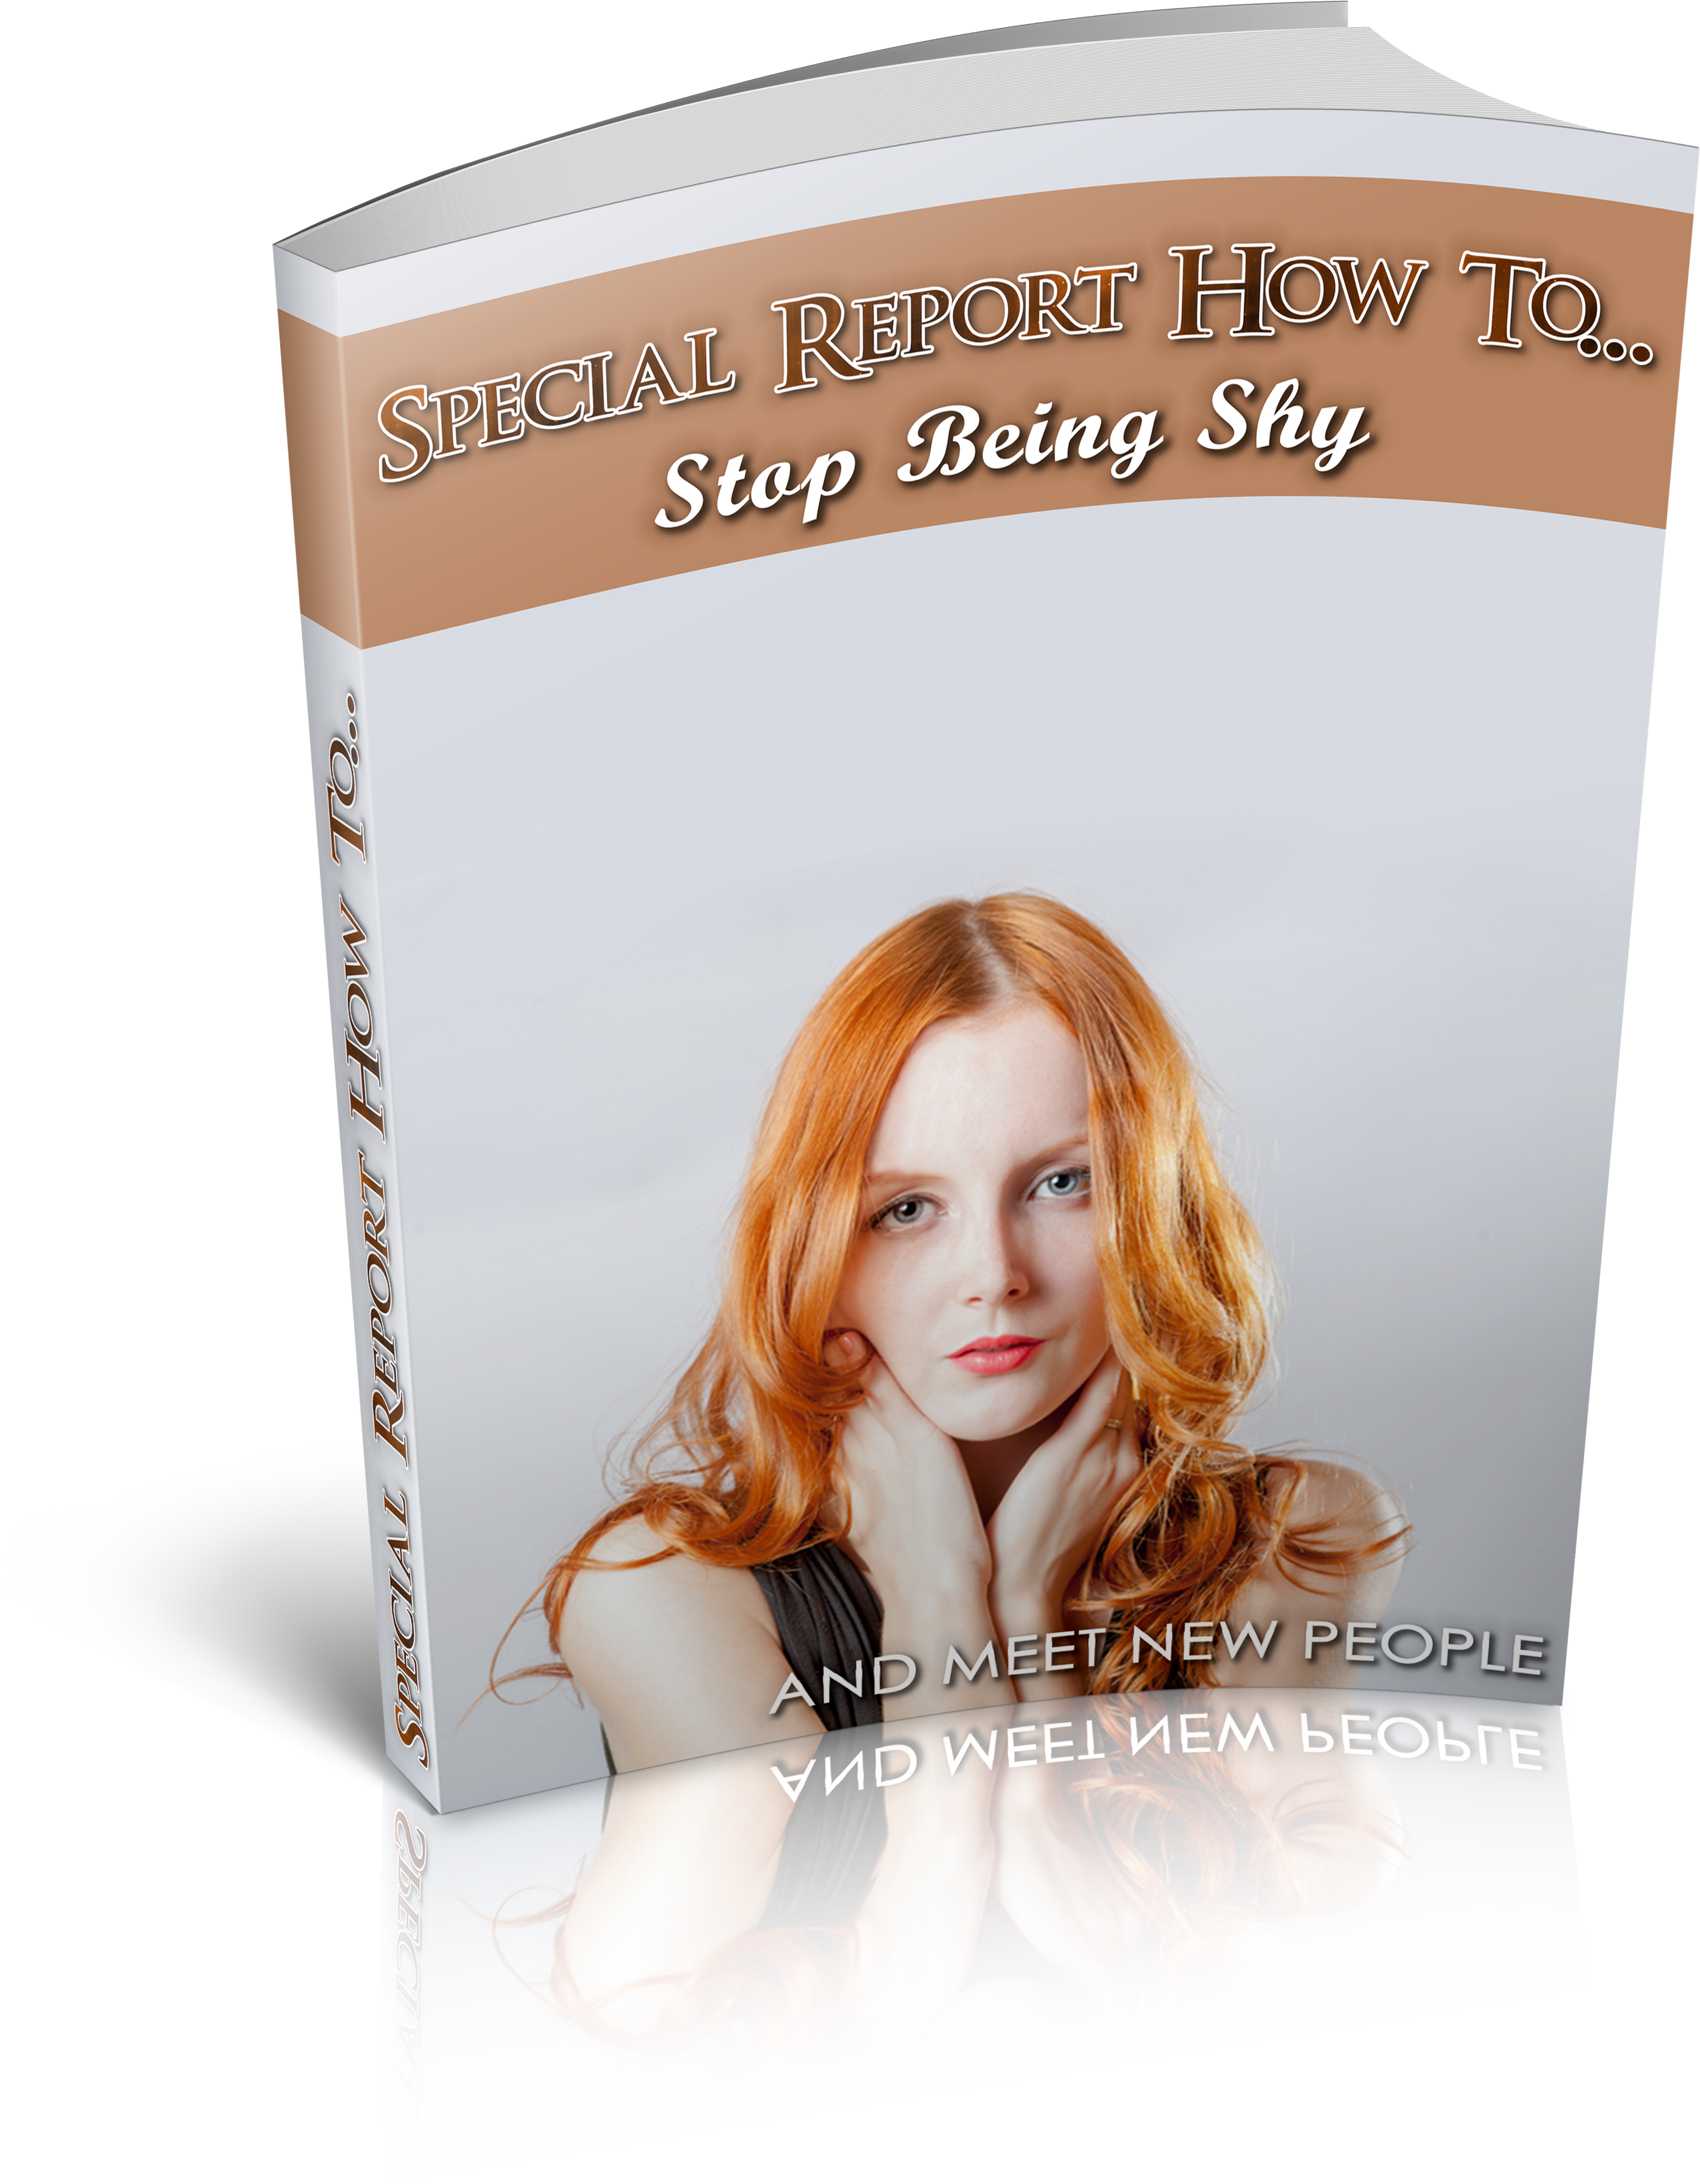 How to stop being shy